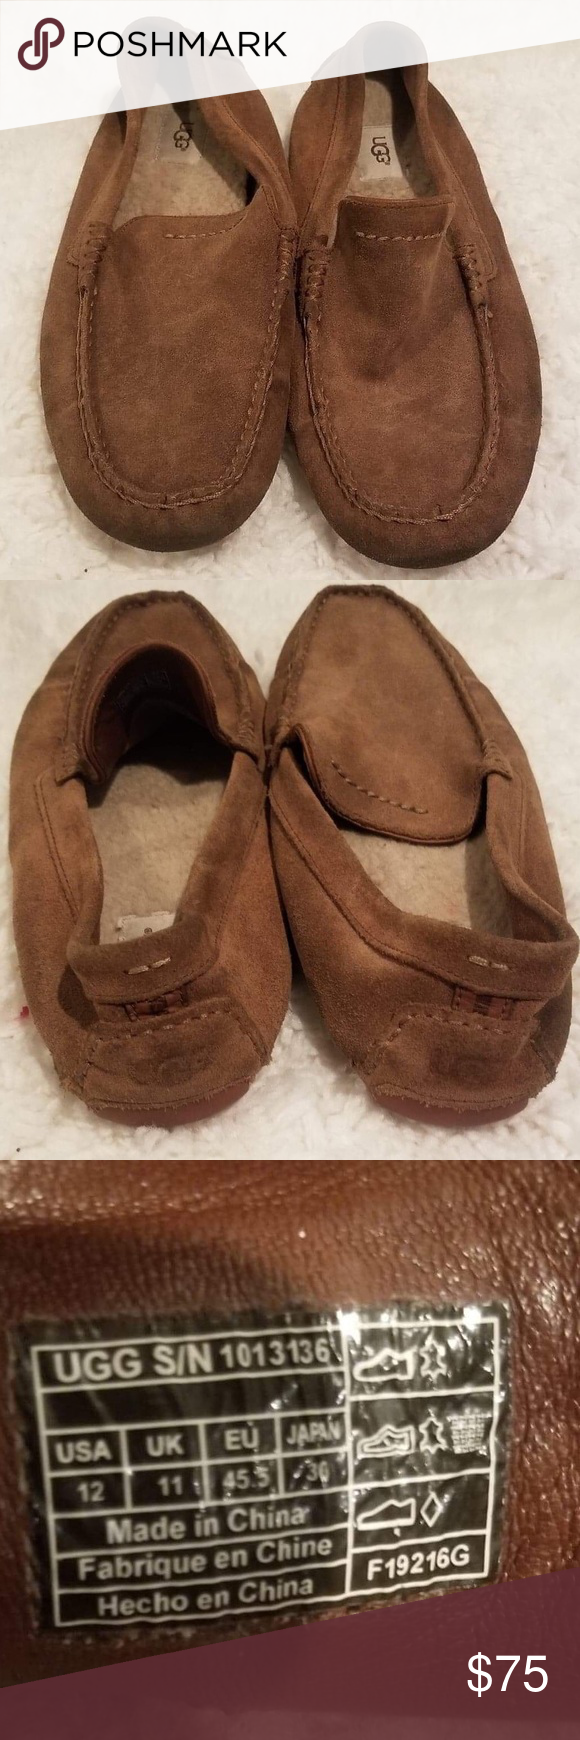 8a859124092 Uggs men Henrick slip on shoes I'll say euc UGG Shoes Loafers & Slip ...